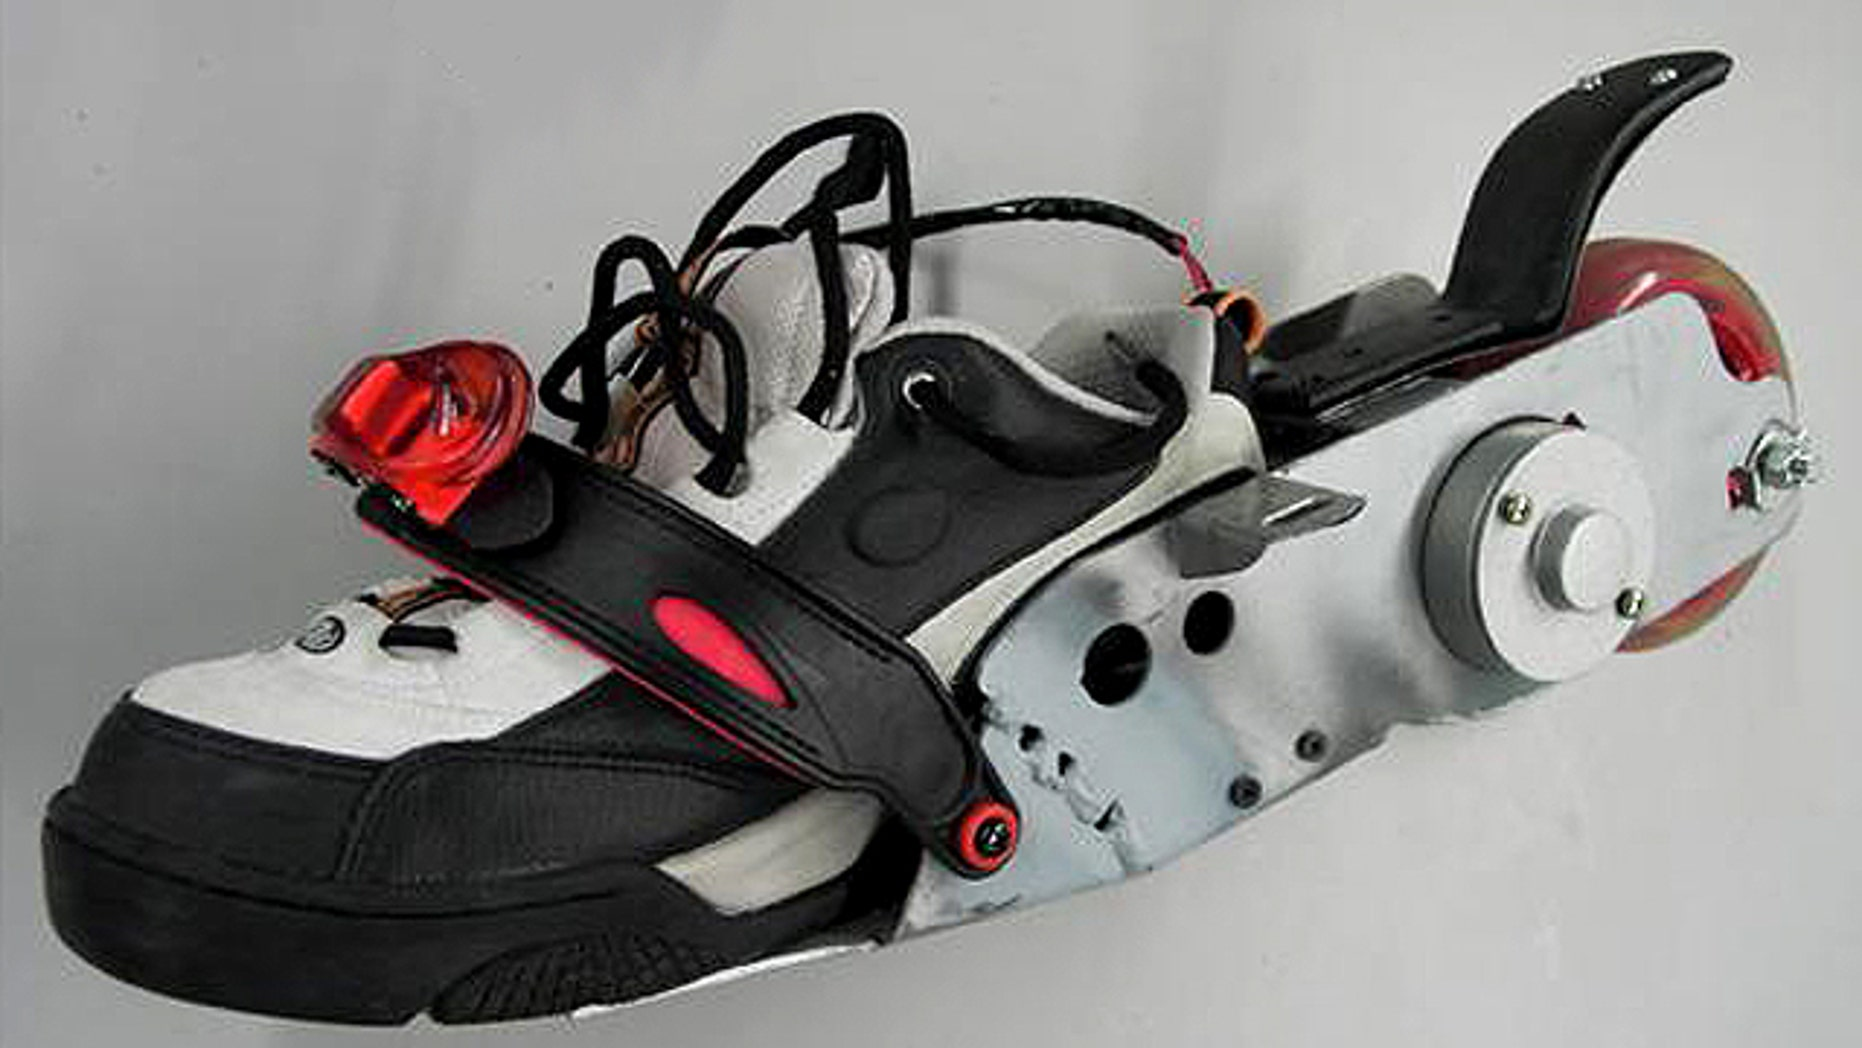 Treadways -- motorized electric sneakers -- are designed designed to reduce traffic by facilitating a new form of mobility.